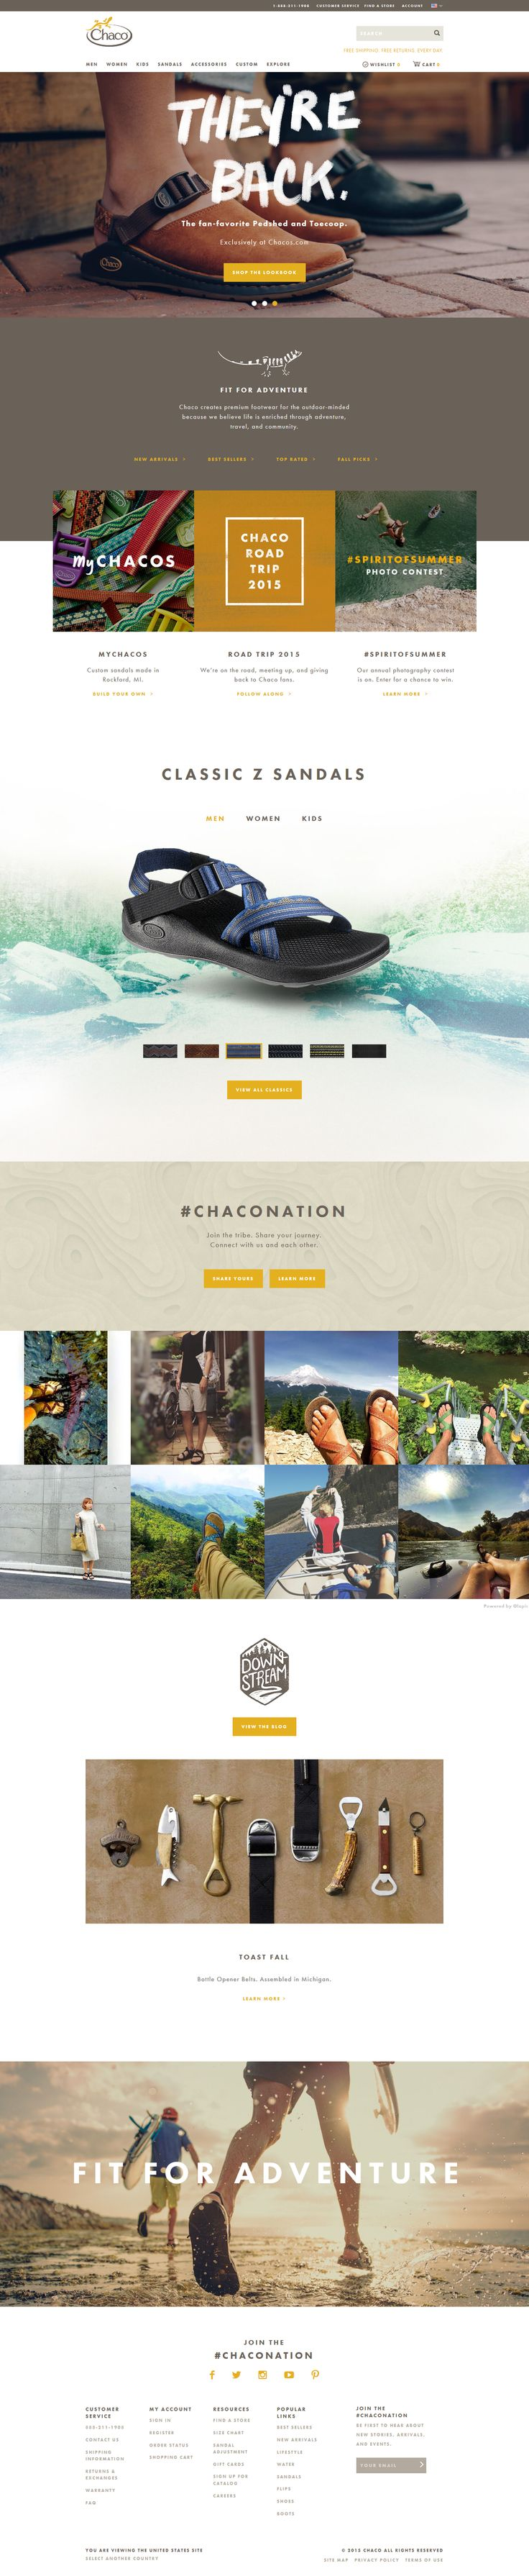 Chacos website